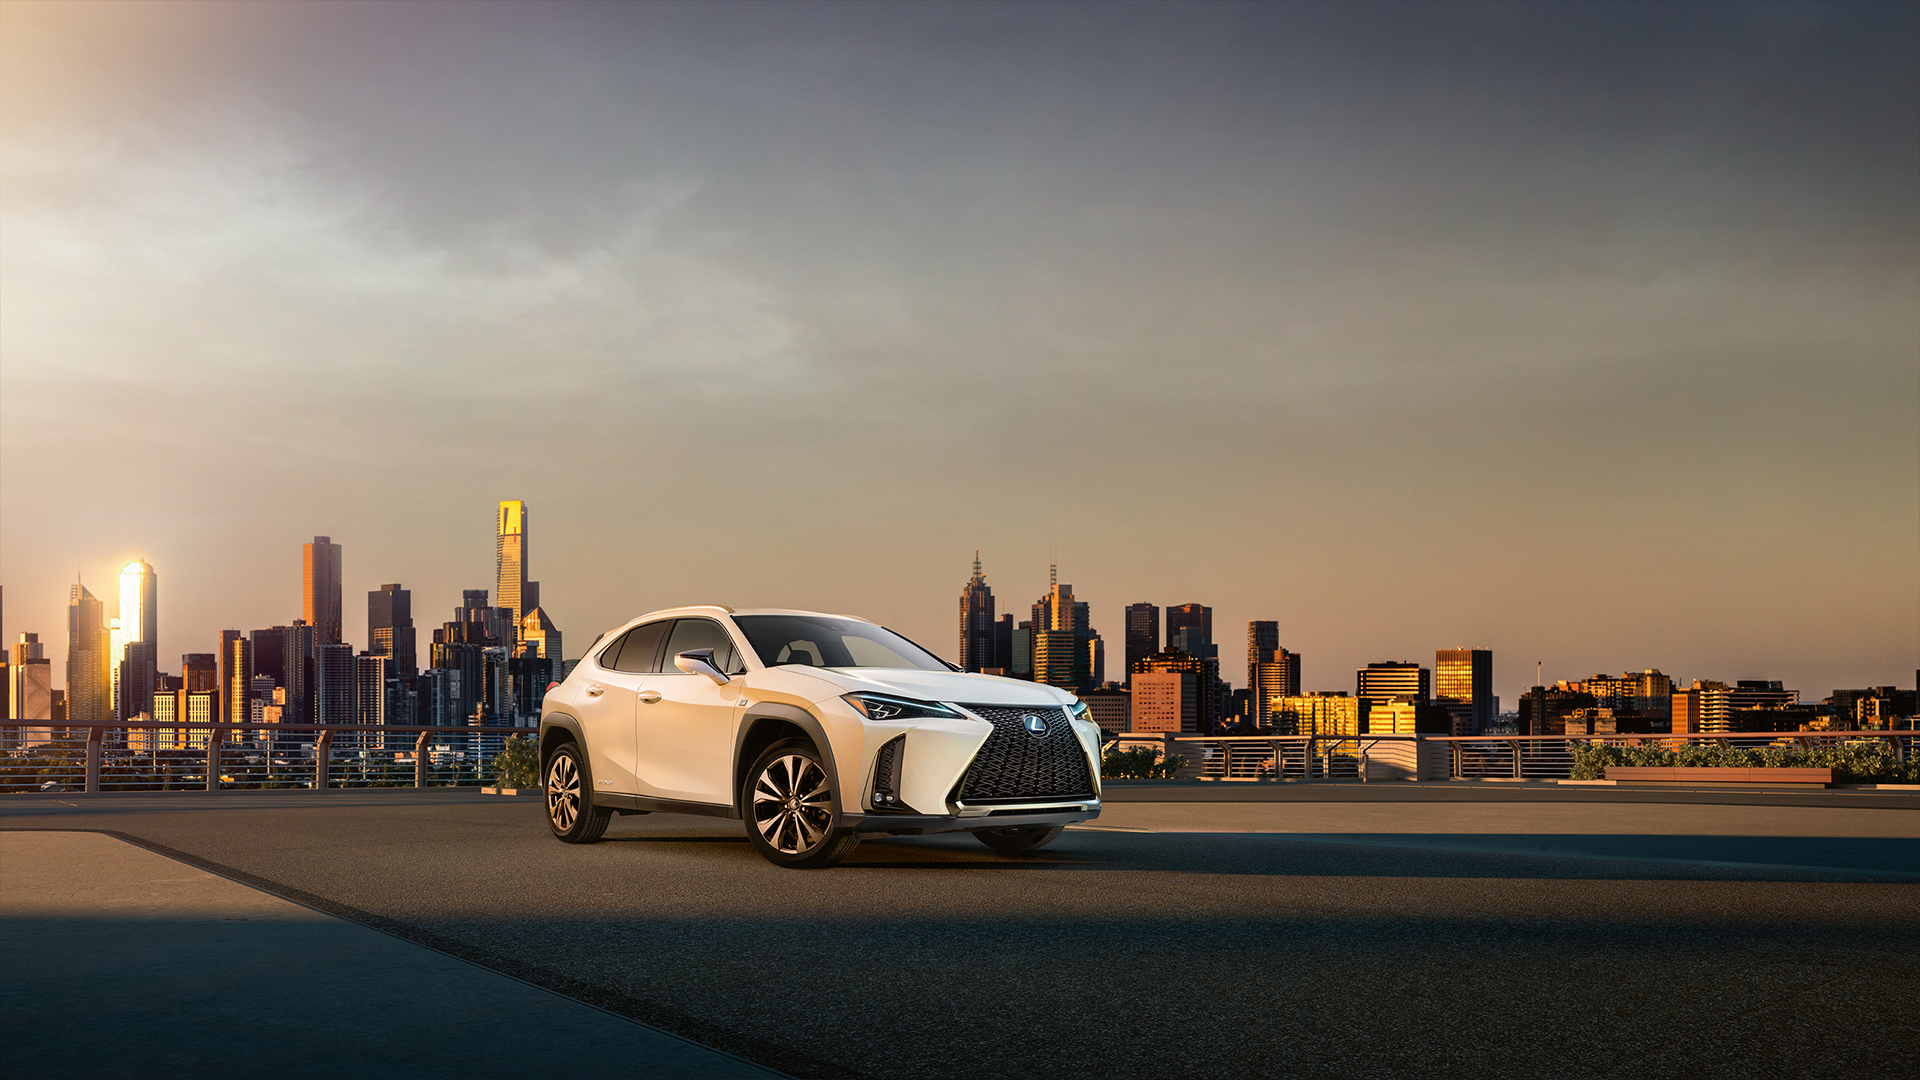 Vista general del Lexus UX250h